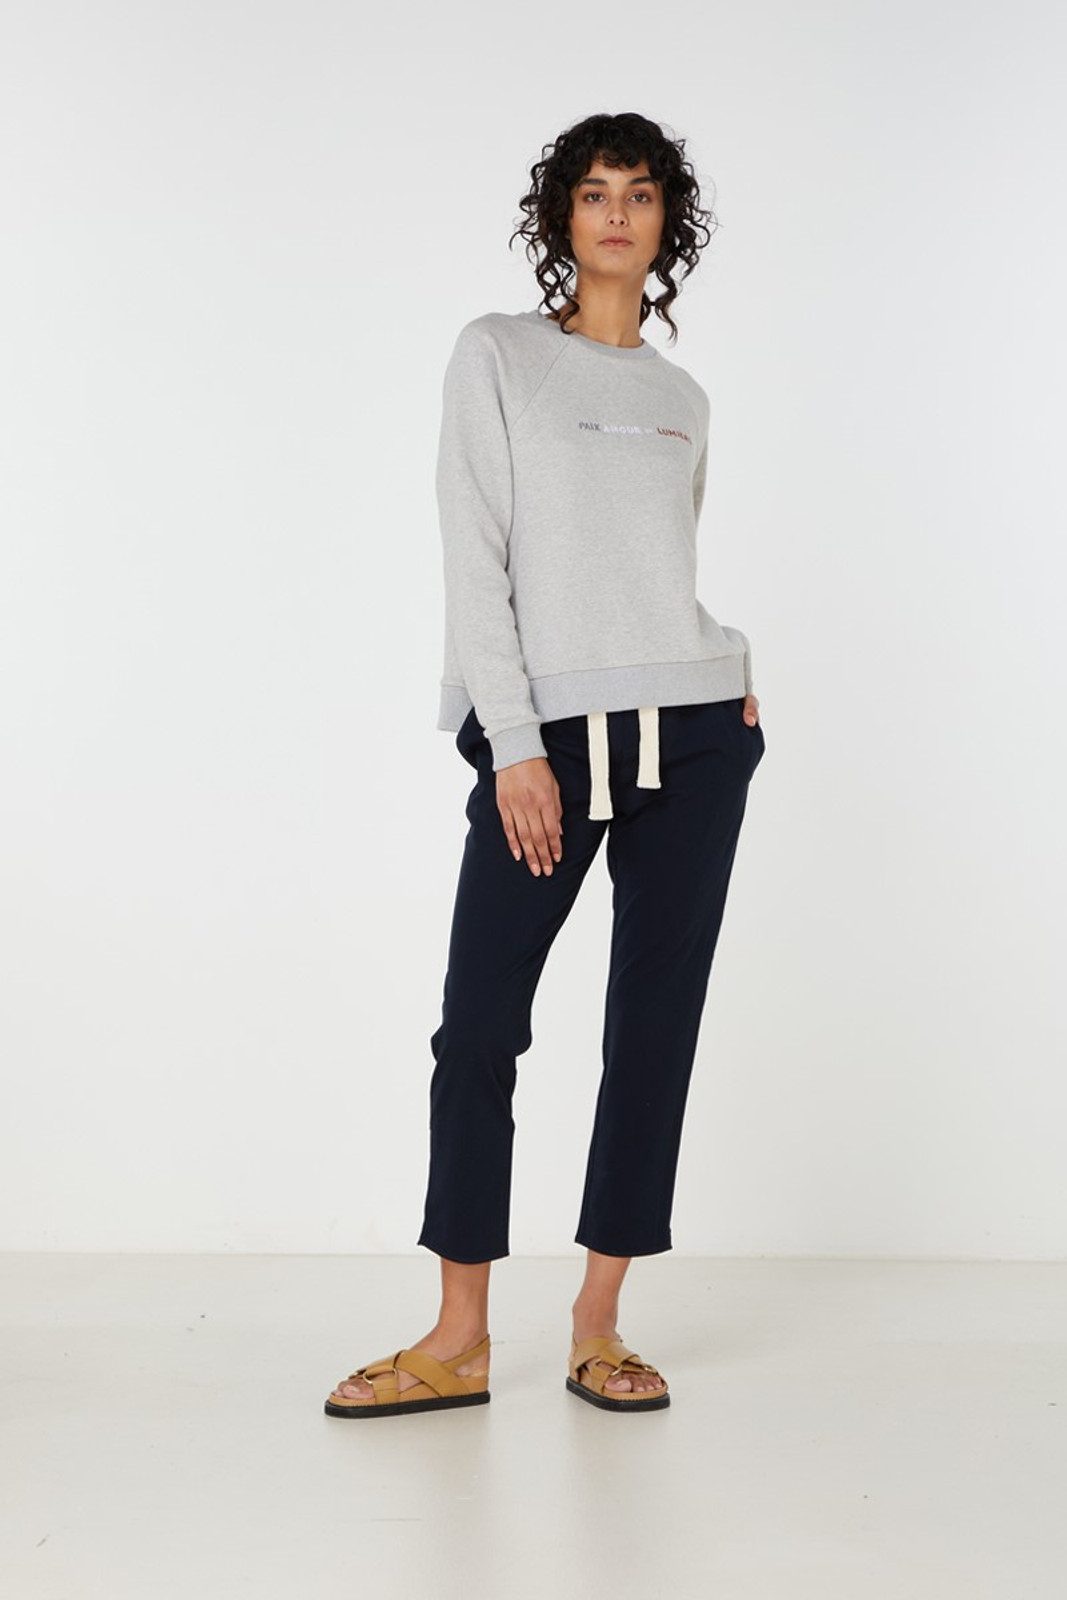 Elka Collective Paix Amour Sweat Grey  2